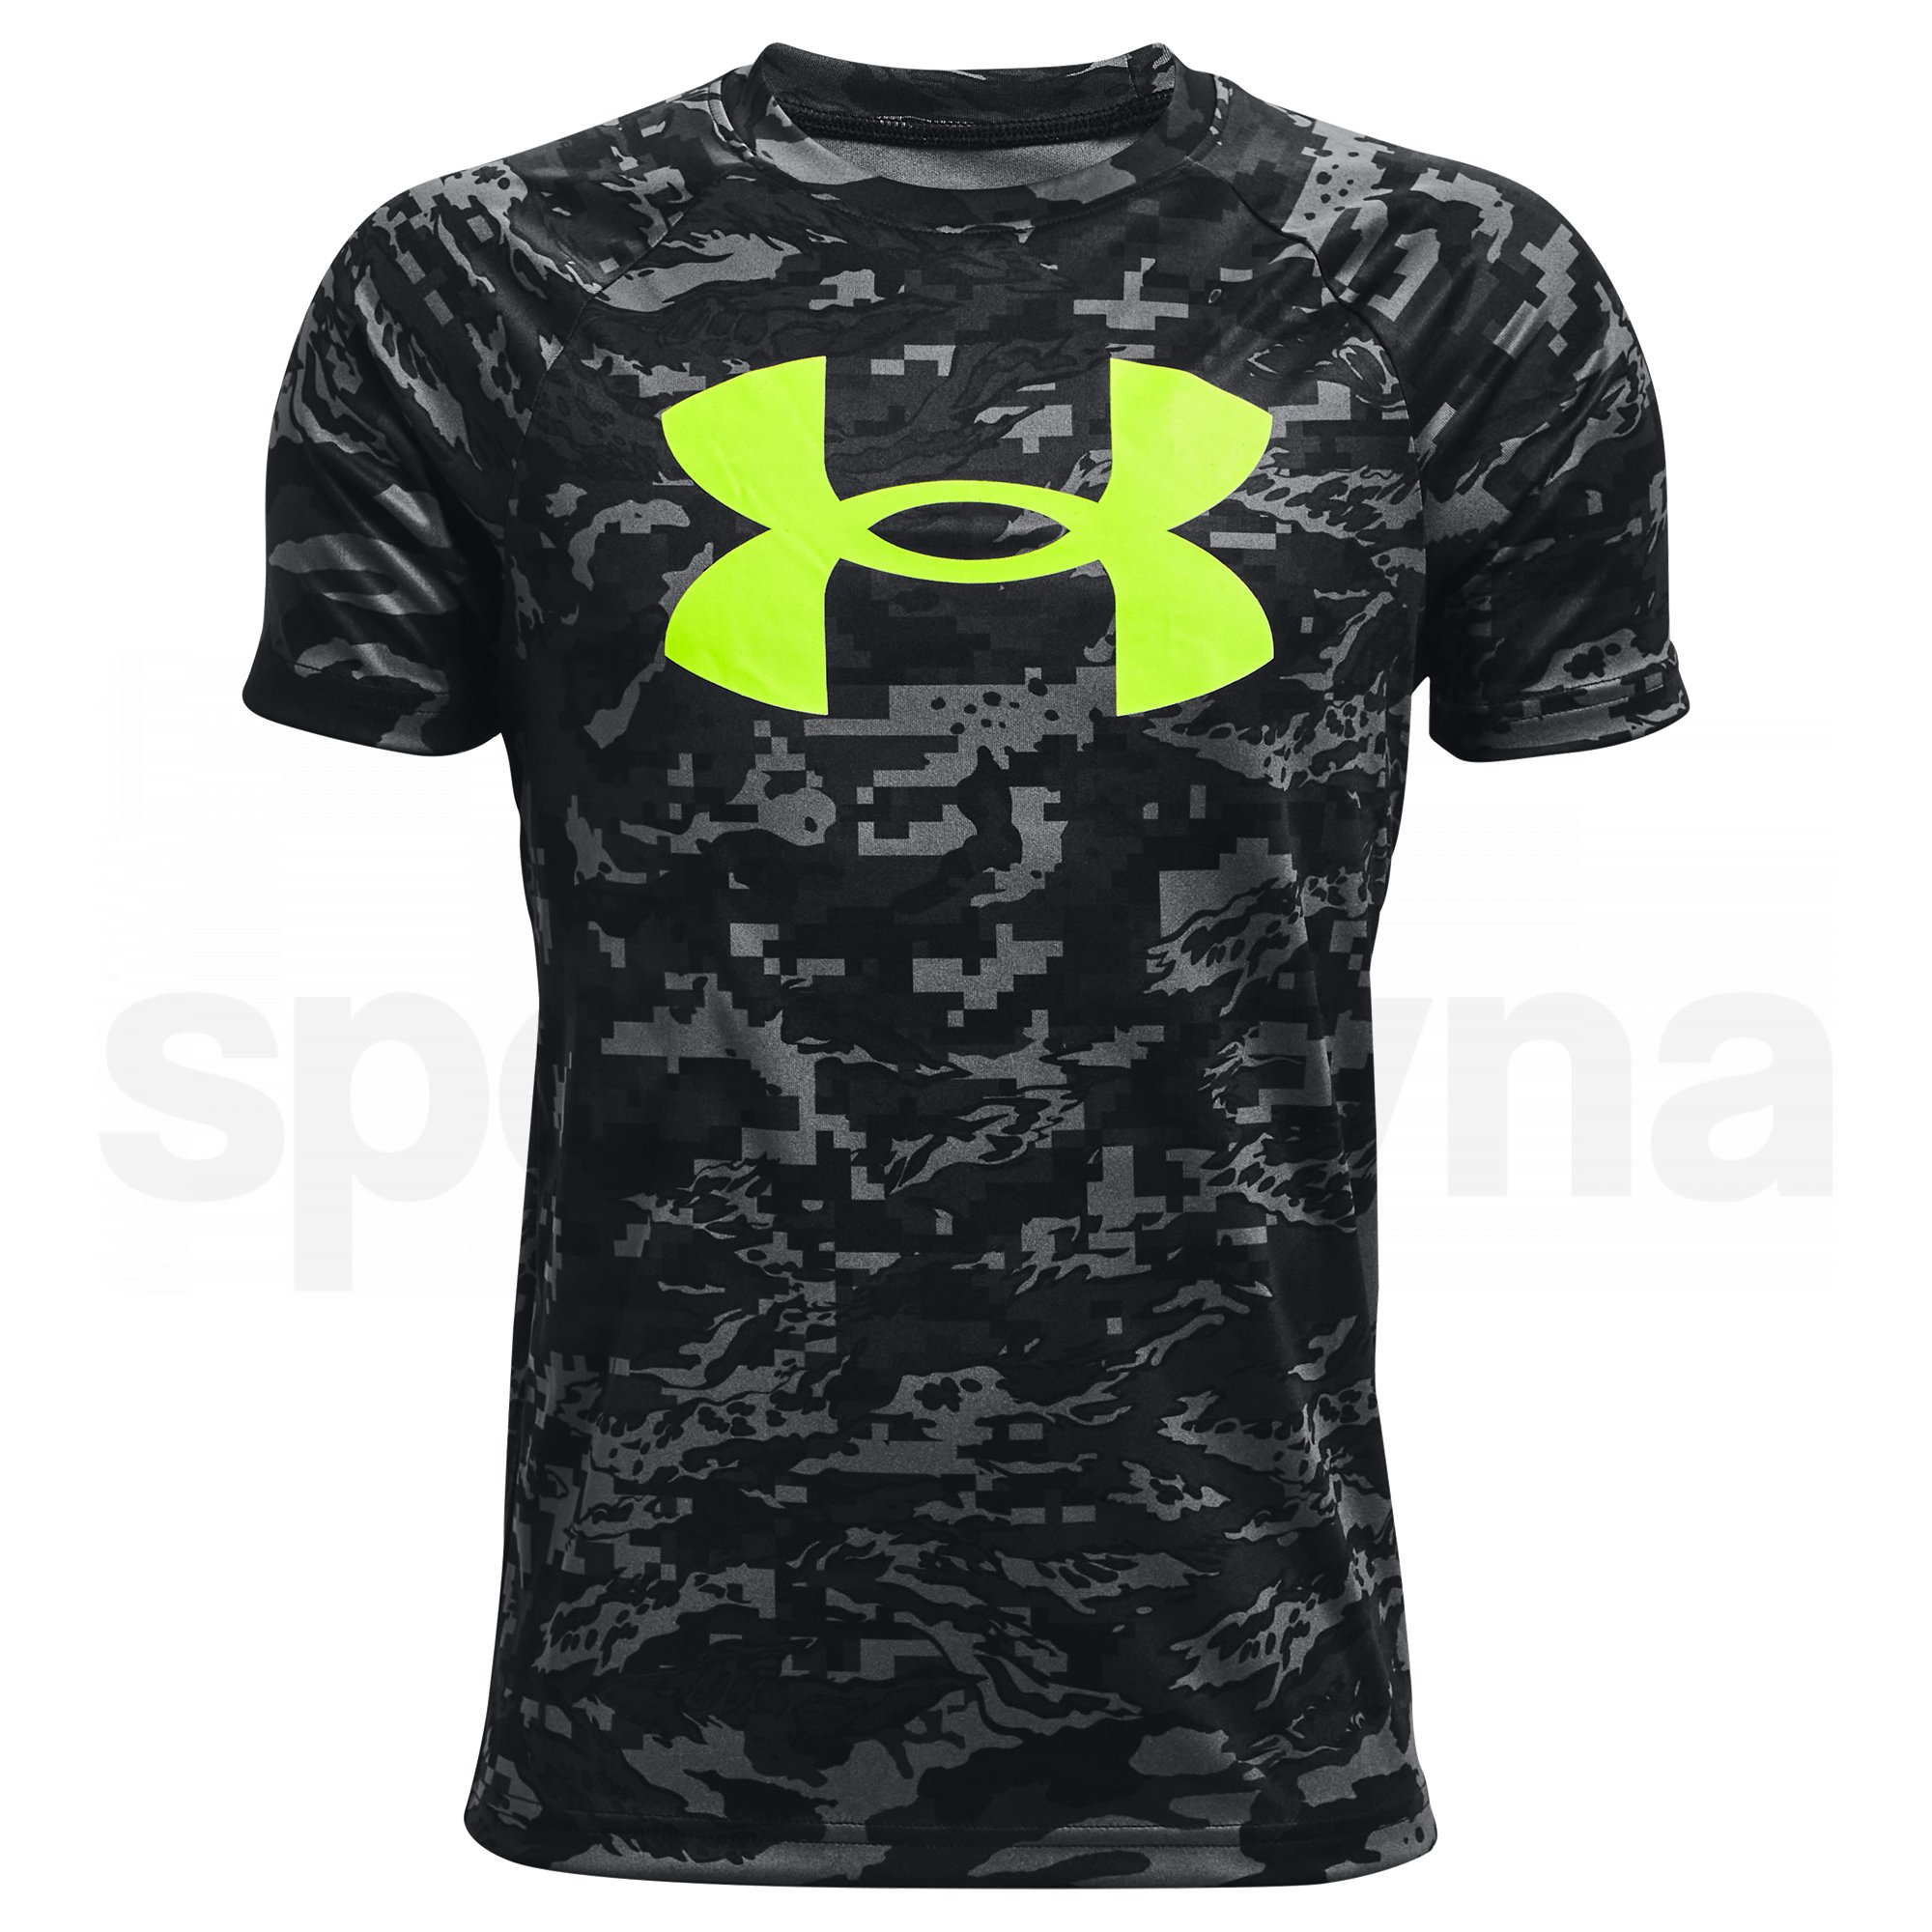 1363278-004_Under Armour Tech BL Printed SS YM